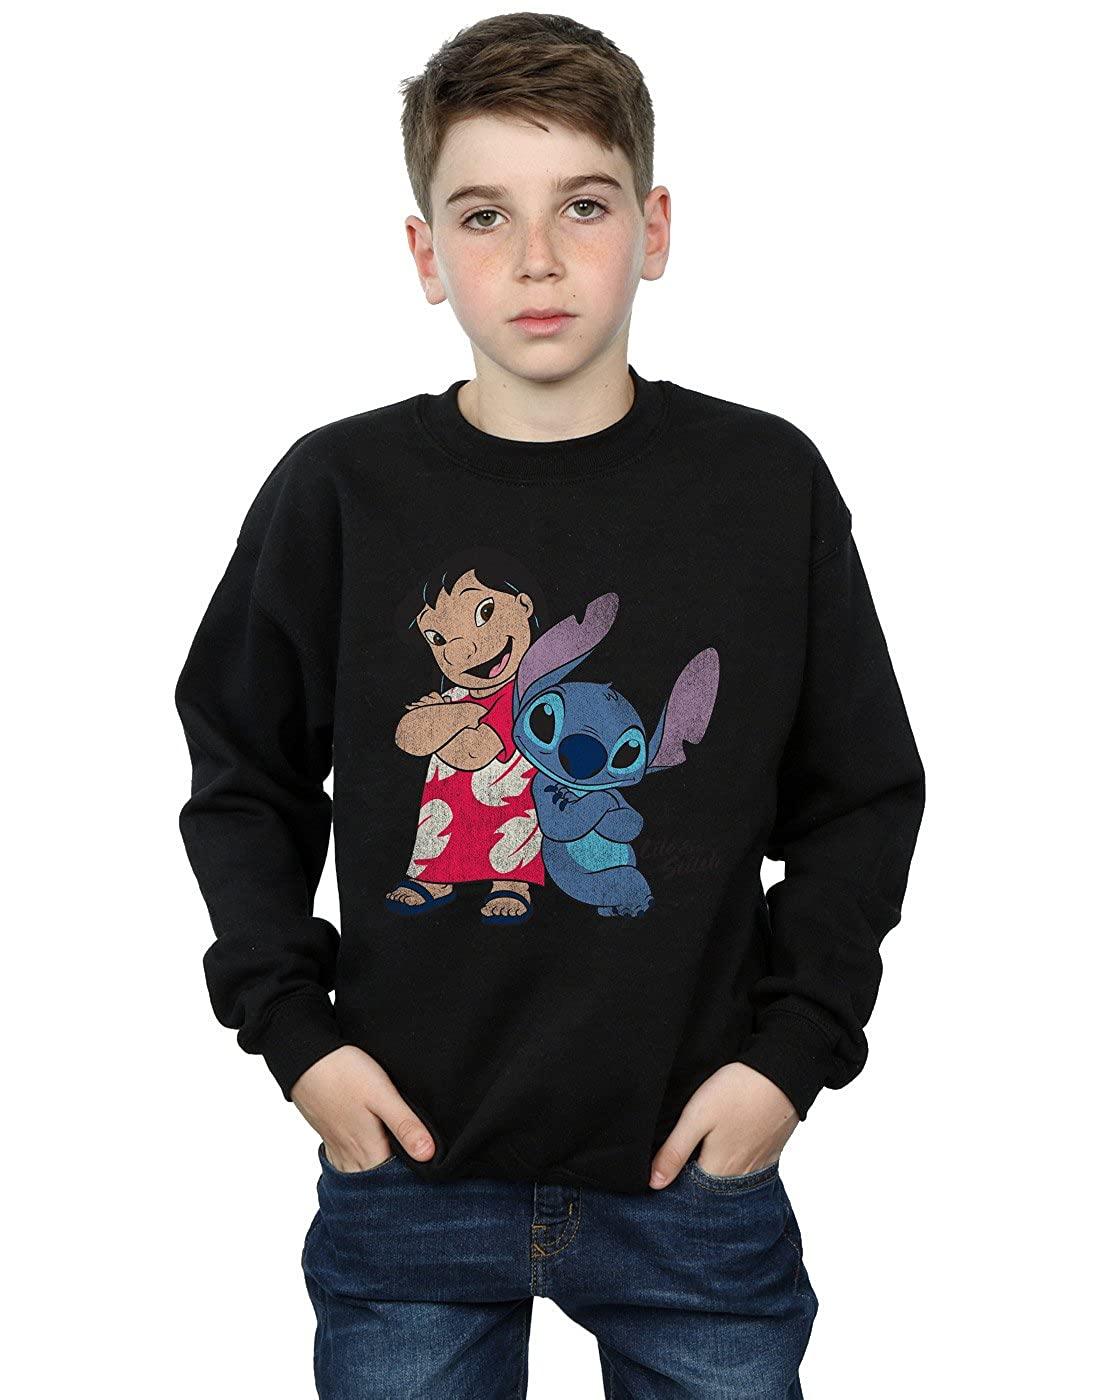 Disney Boys Lilo & Stitch Classic Lilo & Stitch Sweatshirt Absolute Cult